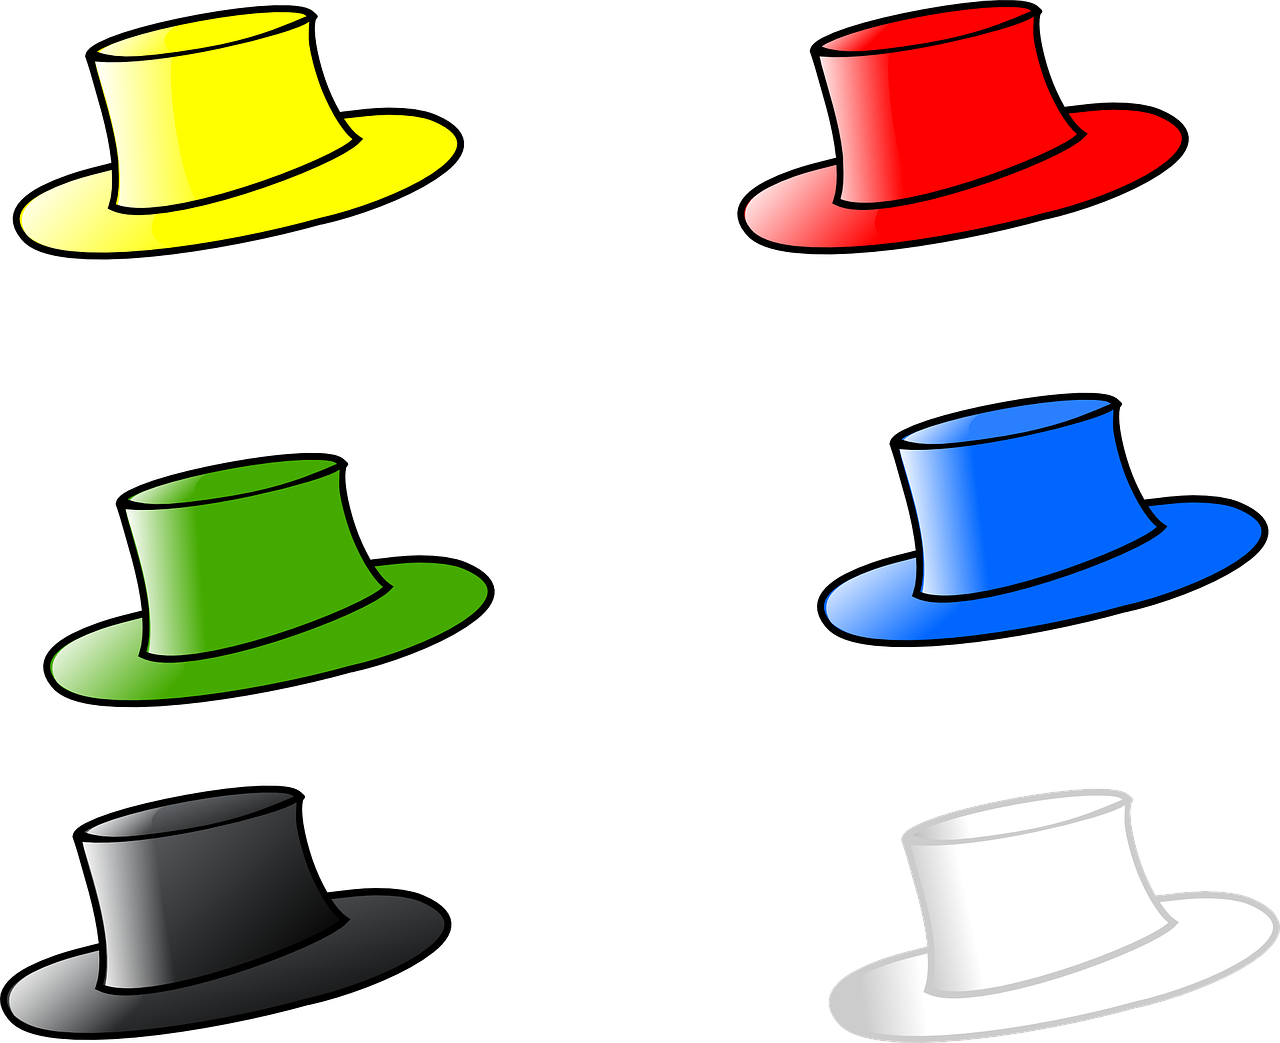 hat,six,hats,head,wear,fashion,red,black,blue,yellow,green,white,free vector graphics,free pictures, free photos, free images, royalty free, free illustrations, public domain